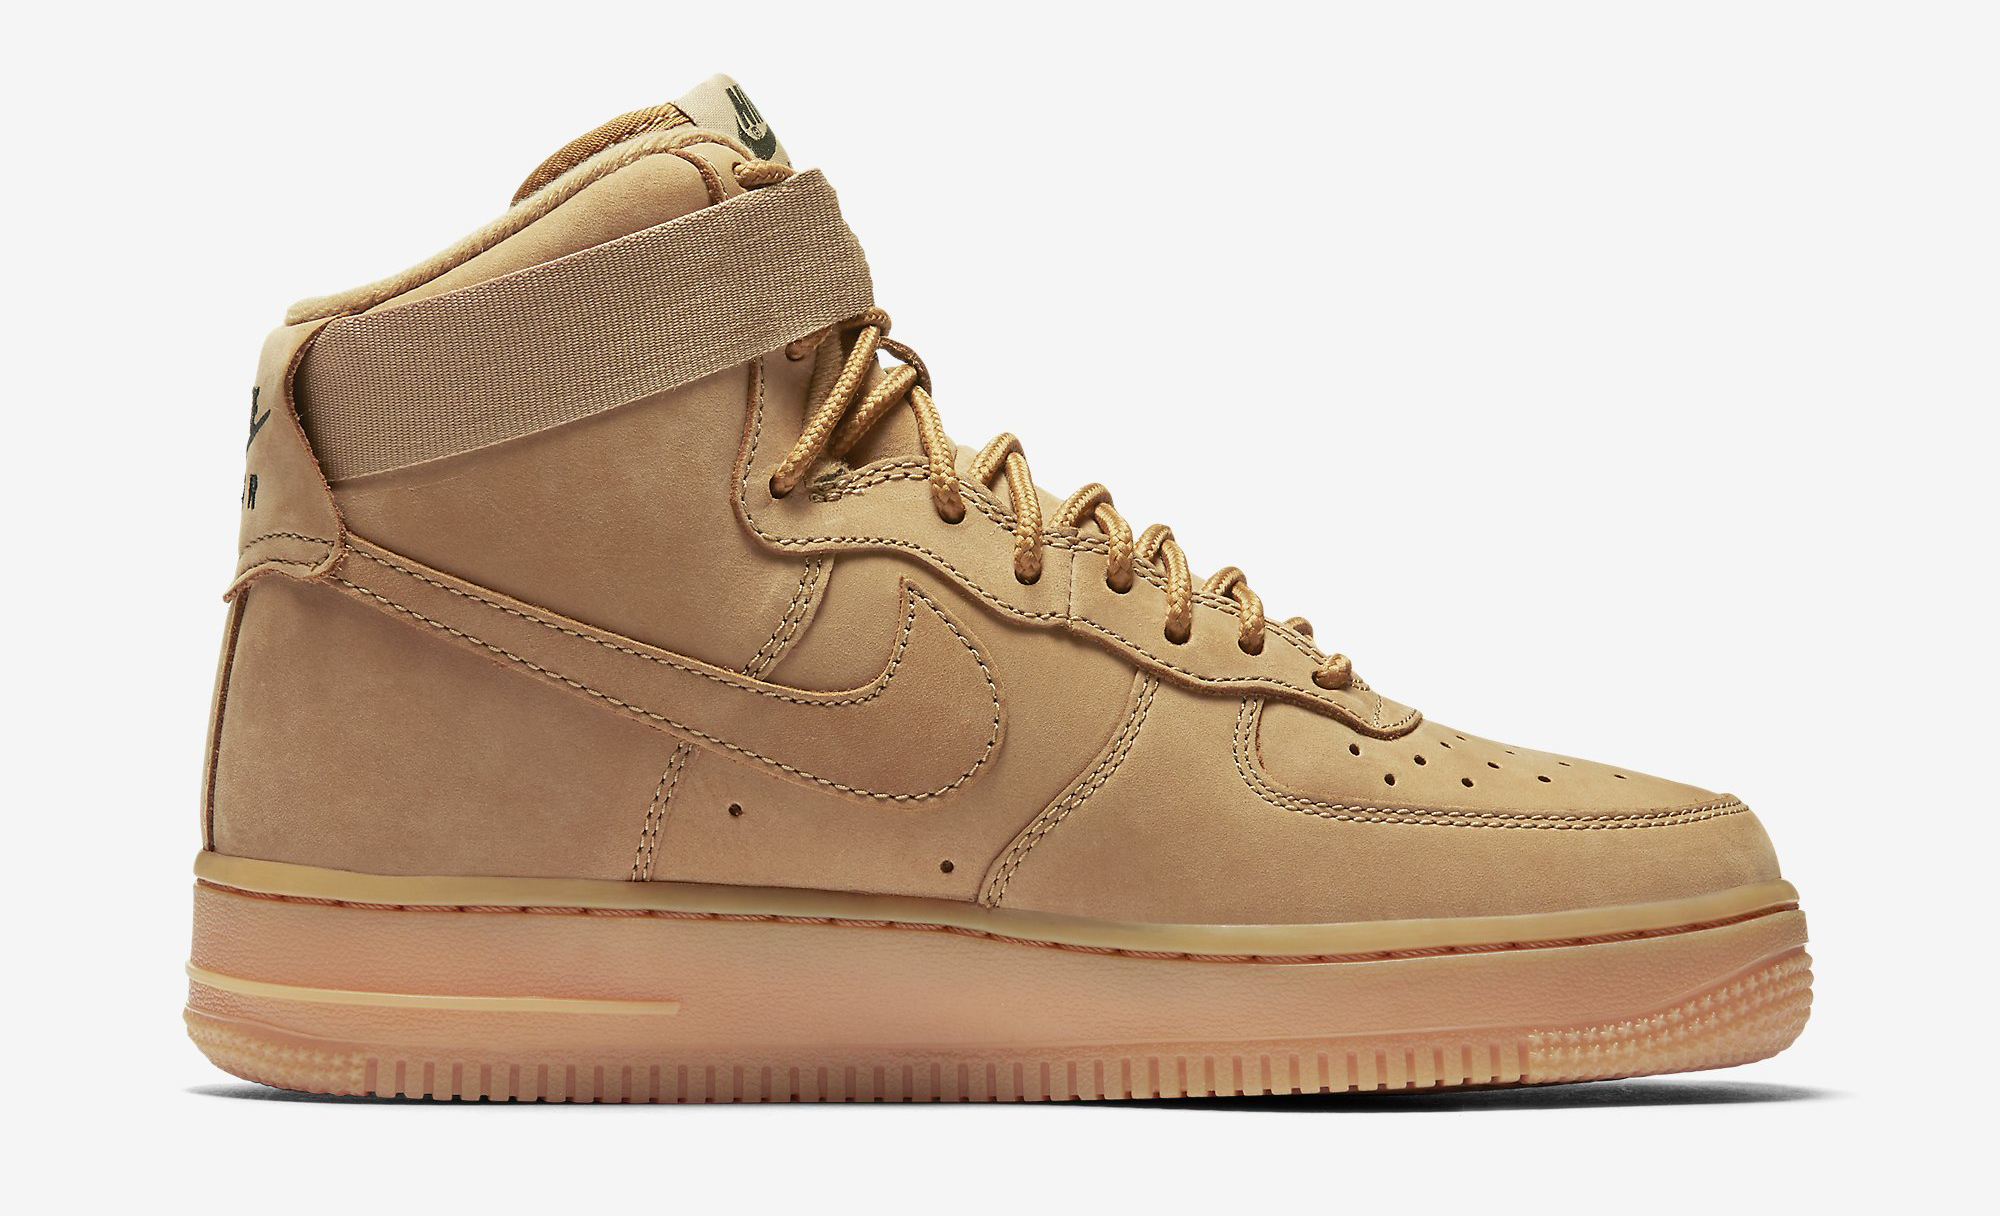 new styles d601d f5ee4 Wheat Nike Air Force 1 High Womens 654440-200 | Sole Collector